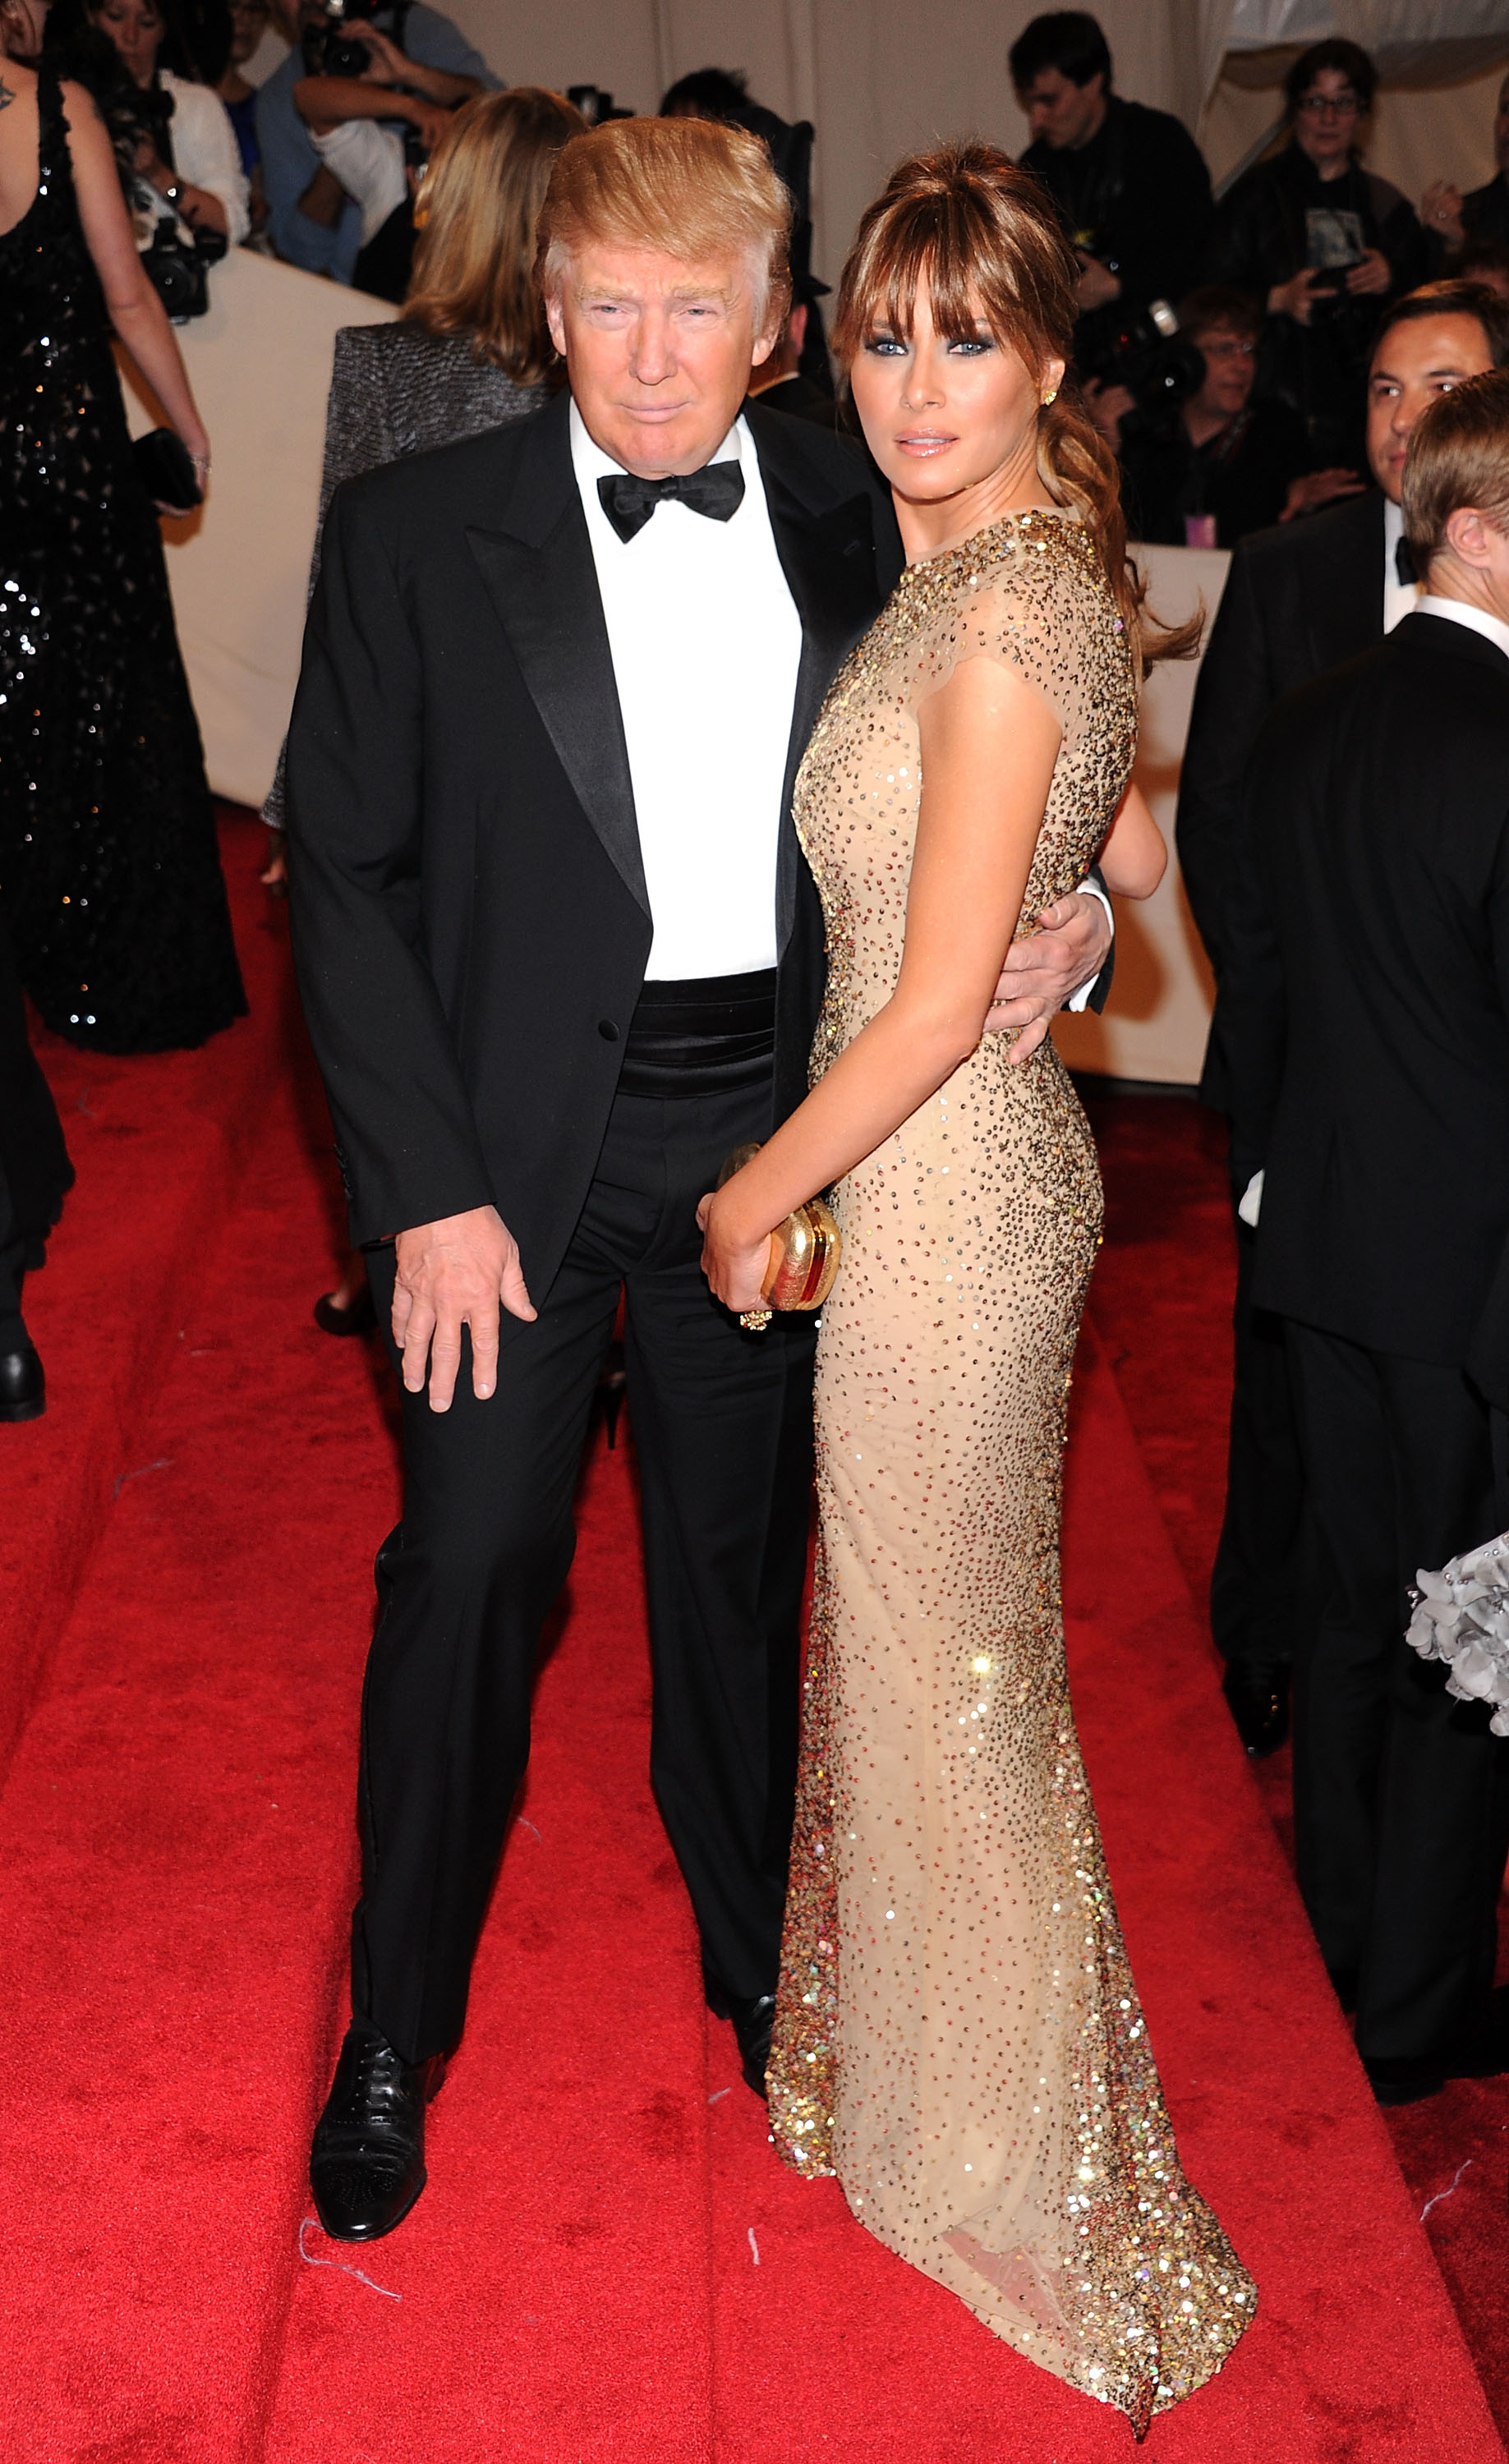 "<p>US President Donald Trump has a long history of attending the <a href=""http://style.nine.com.au/2016/05/03/08/35/met-gala-2016-red-carpet"" target=""_blank"" draggable=""false"">Met Gala</a>, that first Monday in May where the cream of fashion gather to support New York's Costume Institute and get their pictures in the social pages. Despite decades of support, neither the President, his First Lady Melania nor First Daughter Ivanka will be on the red carpet this year.</p> <p> The snub might have just as much to do with the long <a href=""https://style.nine.com.au/2017/03/13/10/05/melania-trump-designer-refuse-zac-tom-ford-marc"" target=""_blank"" draggable=""false"">list of designers</a> who refuse to dress the Trump as the demands of running the country and making late night tweets.</p> <p> This year's theme is based around the exhibition <em>Rei Kawakubo/Comme des Garçons: Art of the In-Between</em>, which will chronicle the influential work of the 74-year-old Japanese fashion designer.<br /> Rei Kawakubo launched Comme des Garçons in 1969 and is only the second living designer to be the subject of a Met exhibit after Yves Saint Laurent in 1983.</p> <p> The Trump's have never loyally dressed to the event's theme, with the exception of Ivanka's memorable headdress in 2008 at S<em>uperheroes: Fashion And Fantasy</em> but their selections are a catalogue of excess and cashed up glamour.</p> <p>Image: Donald and Melania Trump attend the Alexander McQueen: Savage Beauty Costume Institute Gala at The Metropolitan Museum of Art on May 2, 2011.</p>"